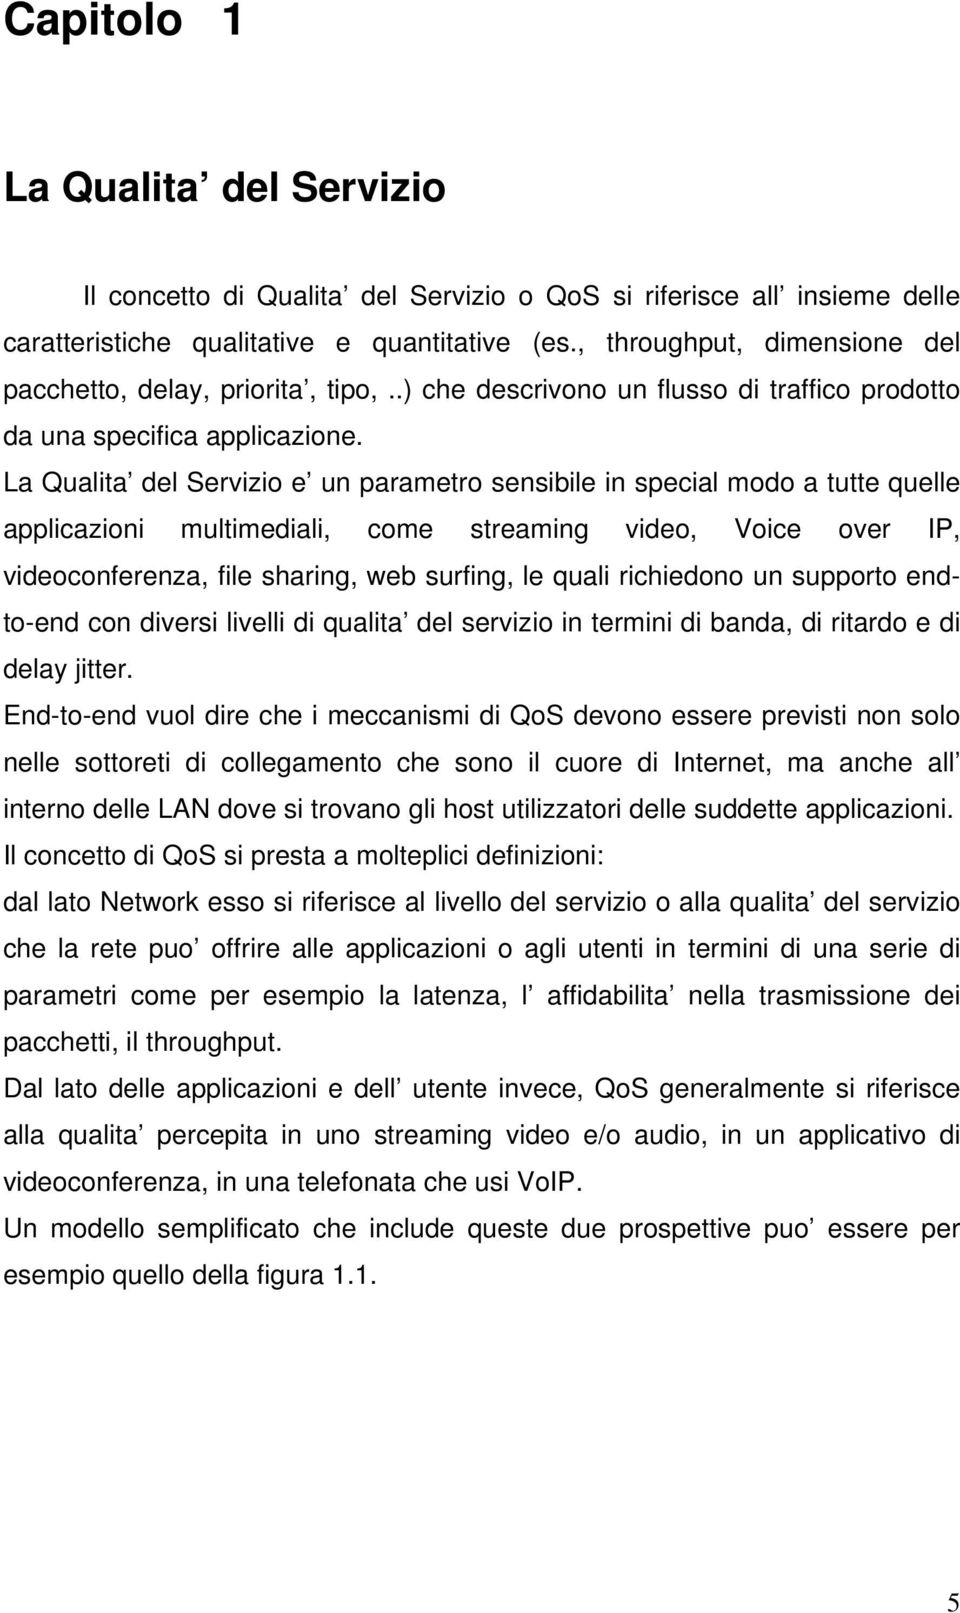 La Qualita del Servizio e un parametro sensibile in special modo a tutte quelle applicazioni multimediali, come streaming video, Voice over IP, videoconferenza, file sharing, web surfing, le quali